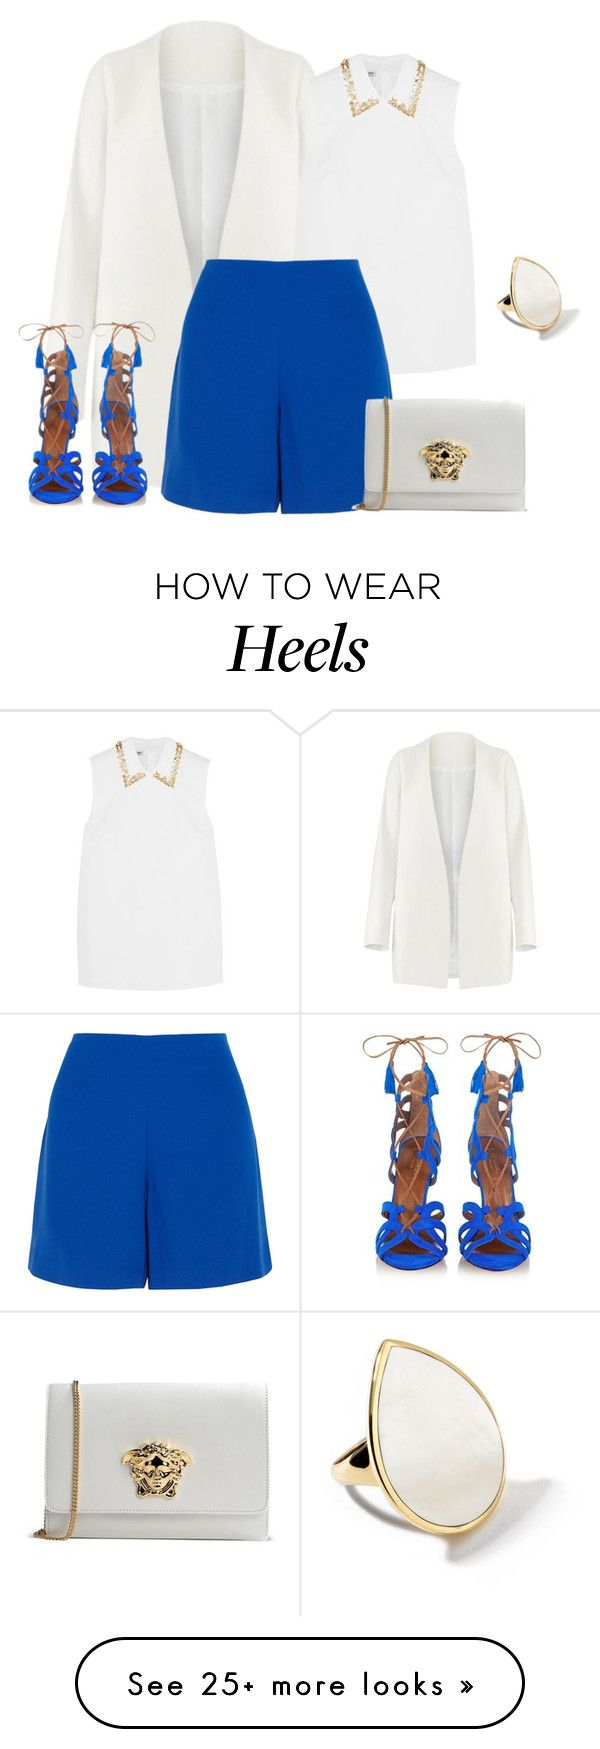 """outfit 3306"" by natalyag on Polyvore featuring Non, Aquazzura, Miu Miu, Opening Ceremony, Ippolita, Versace, women's clothing, women, female and woman"